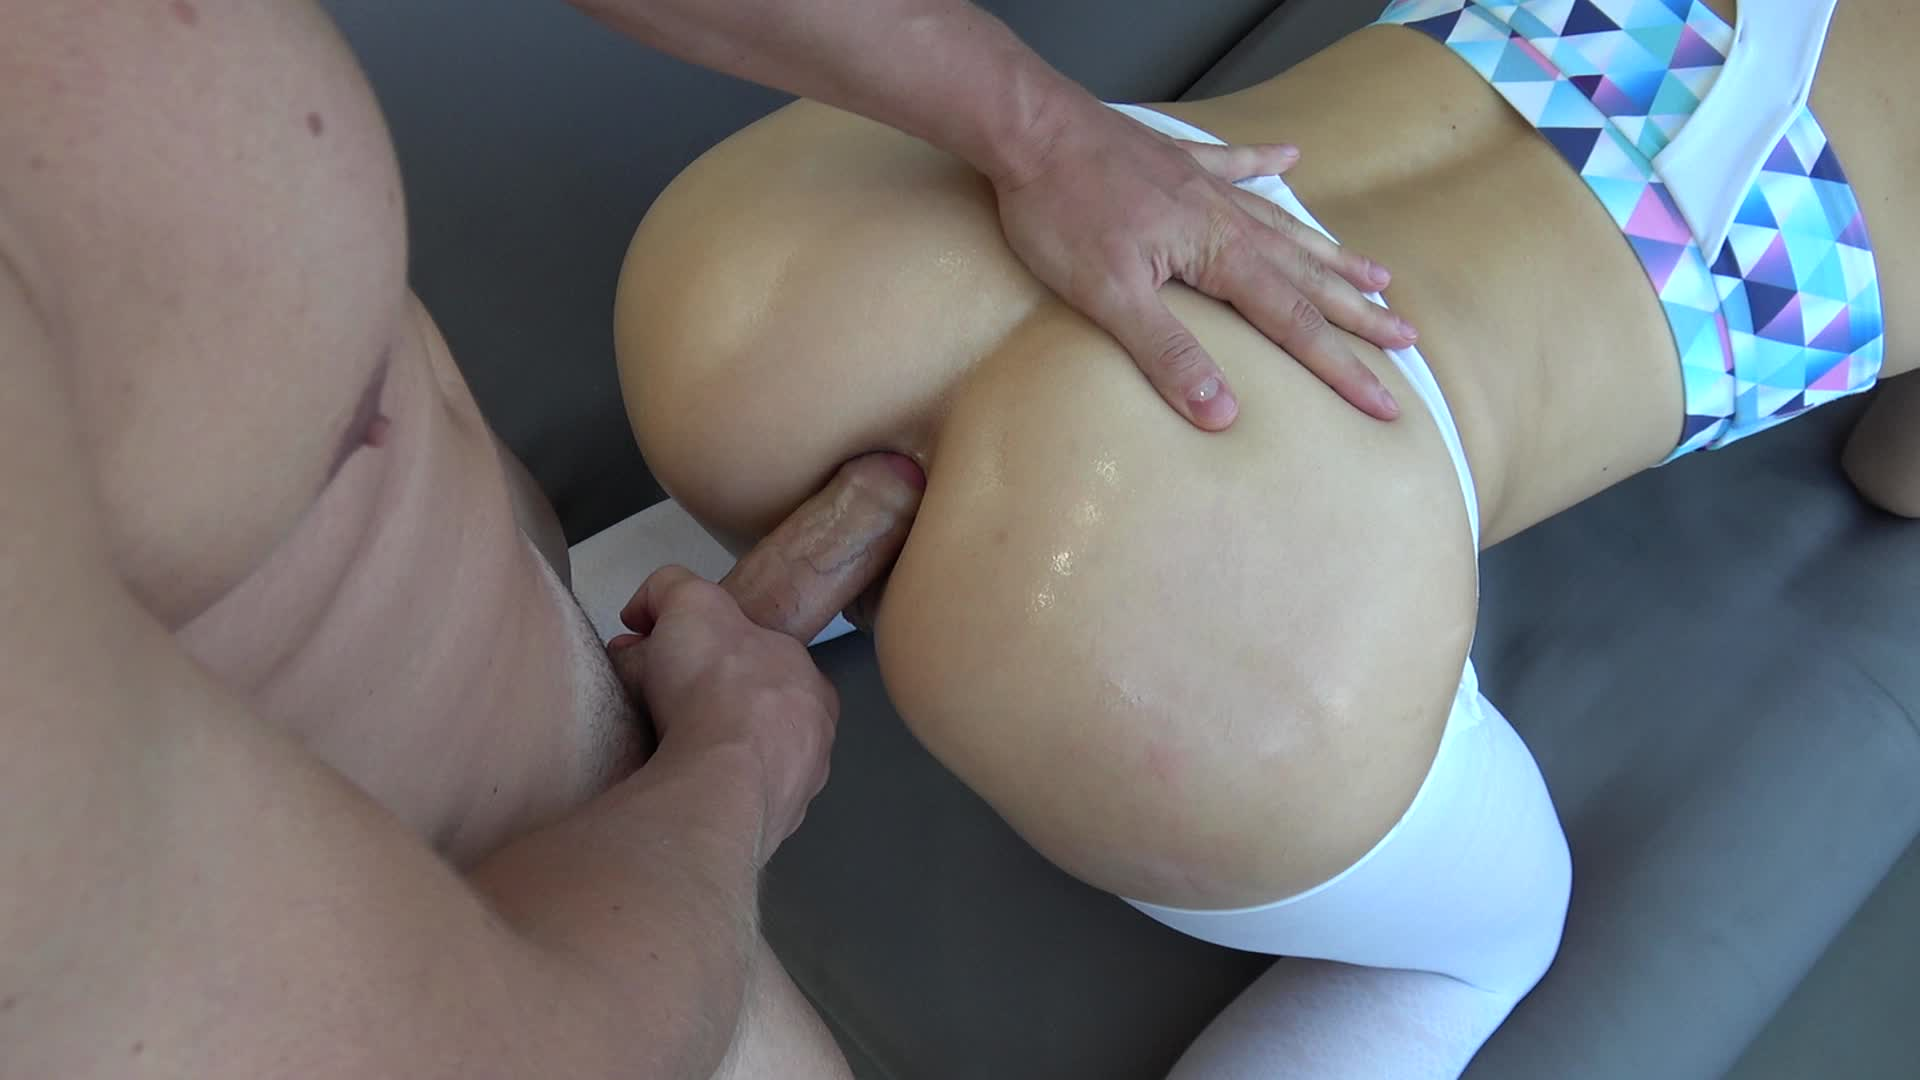 Pawg Stuffs Her Tight Exit Hole For Anal Sex Day